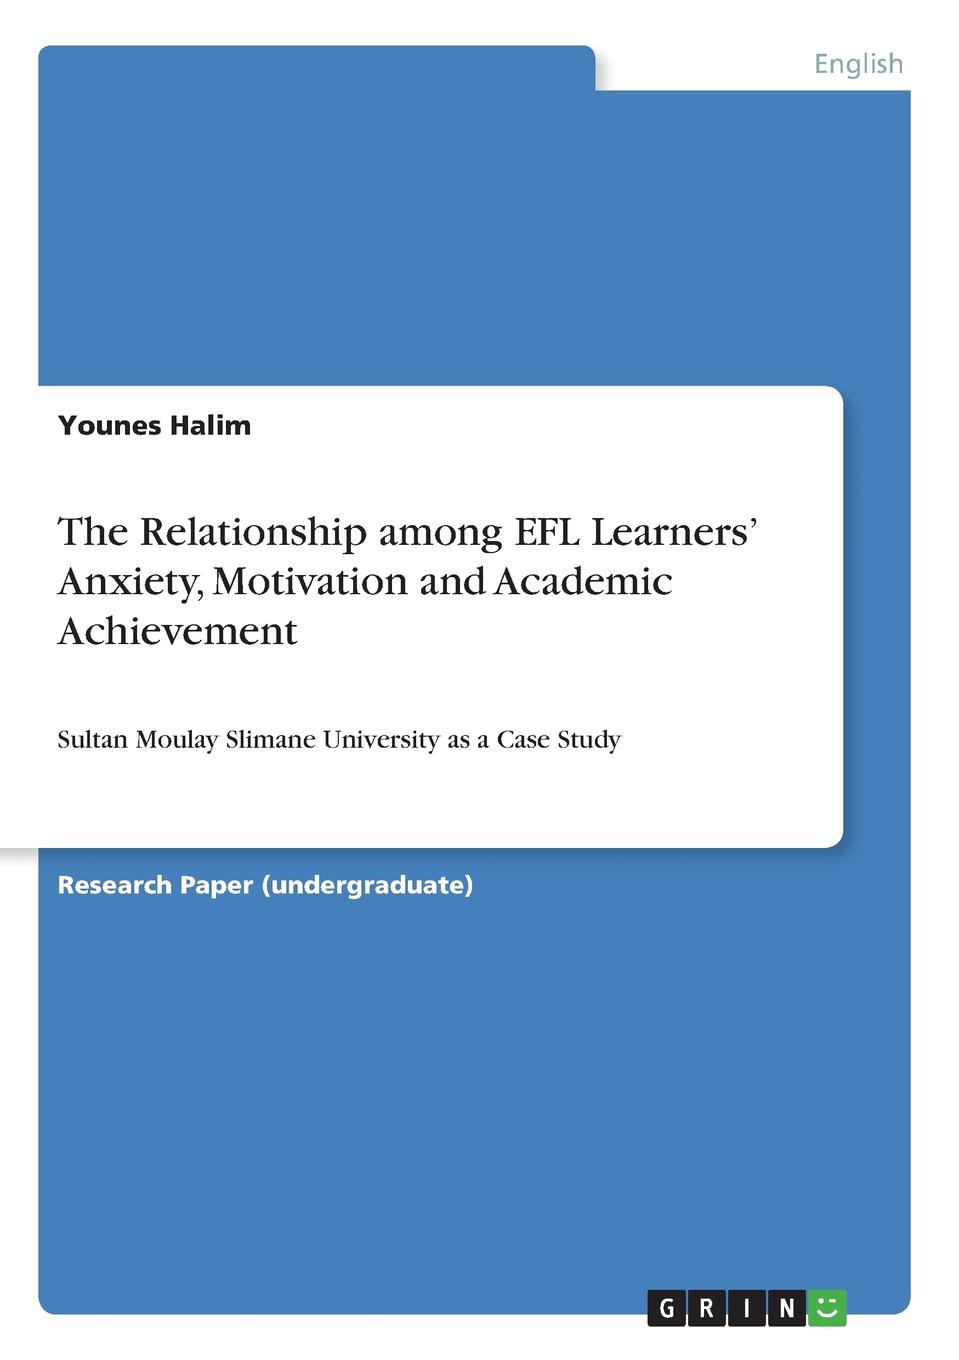 Younes Halim The Relationship among EFL Learners. Anxiety, Motivation and Academic Achievement kofan lee impacts of family styles and adventure program on intrinsic motivation